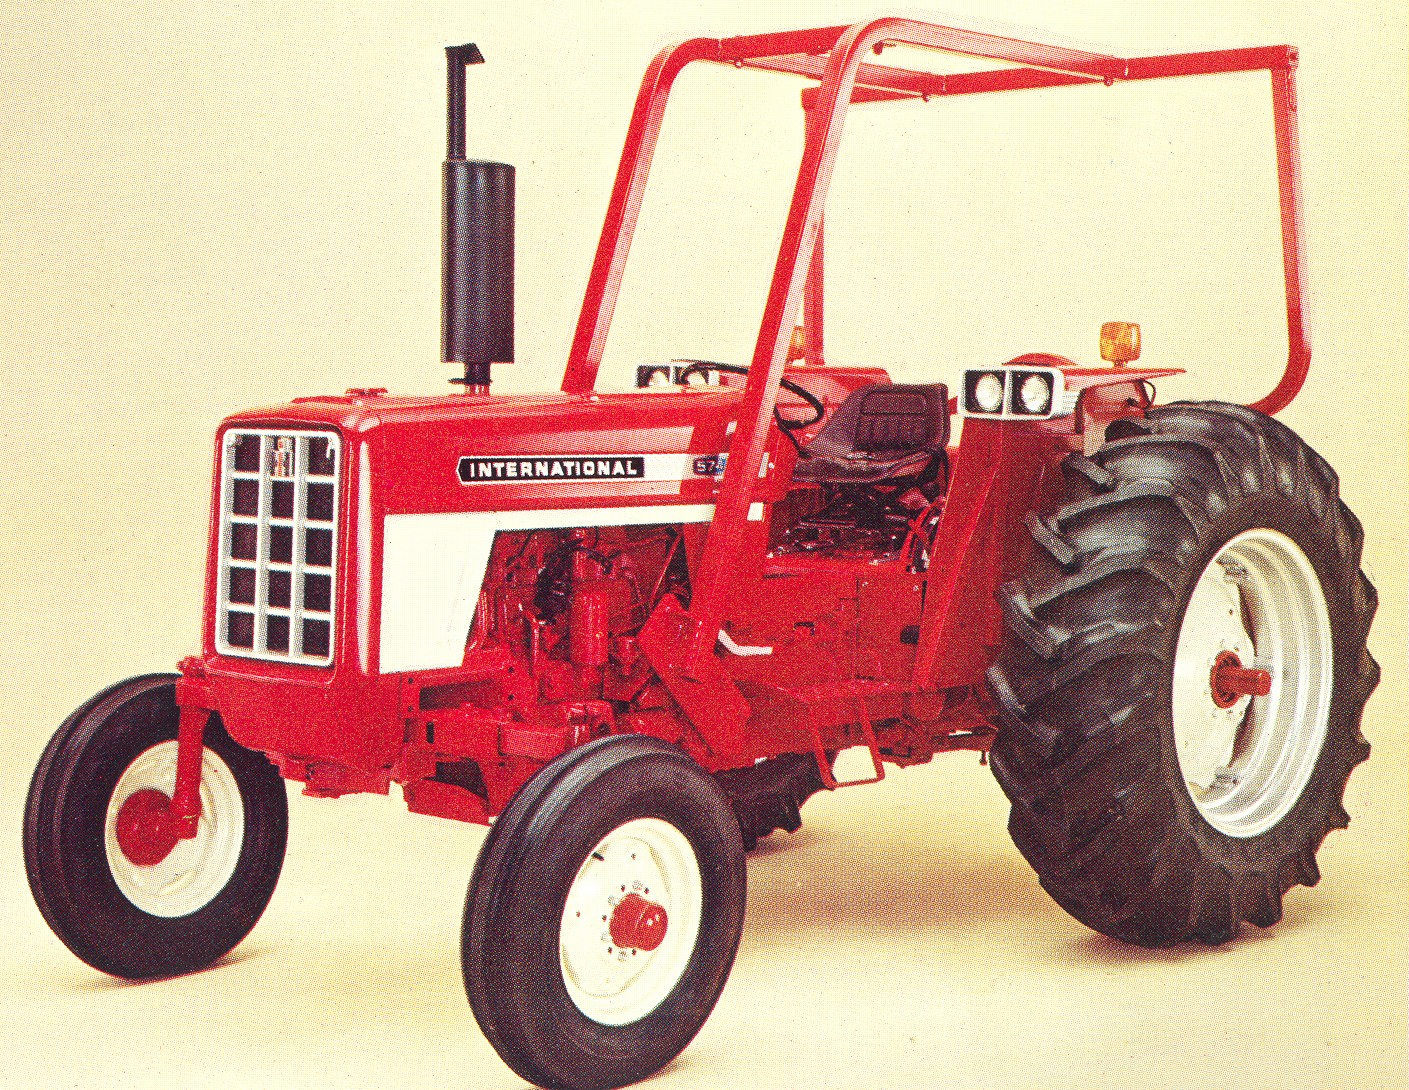 1970 574 International Tractors : Image international row crop gas g tractor